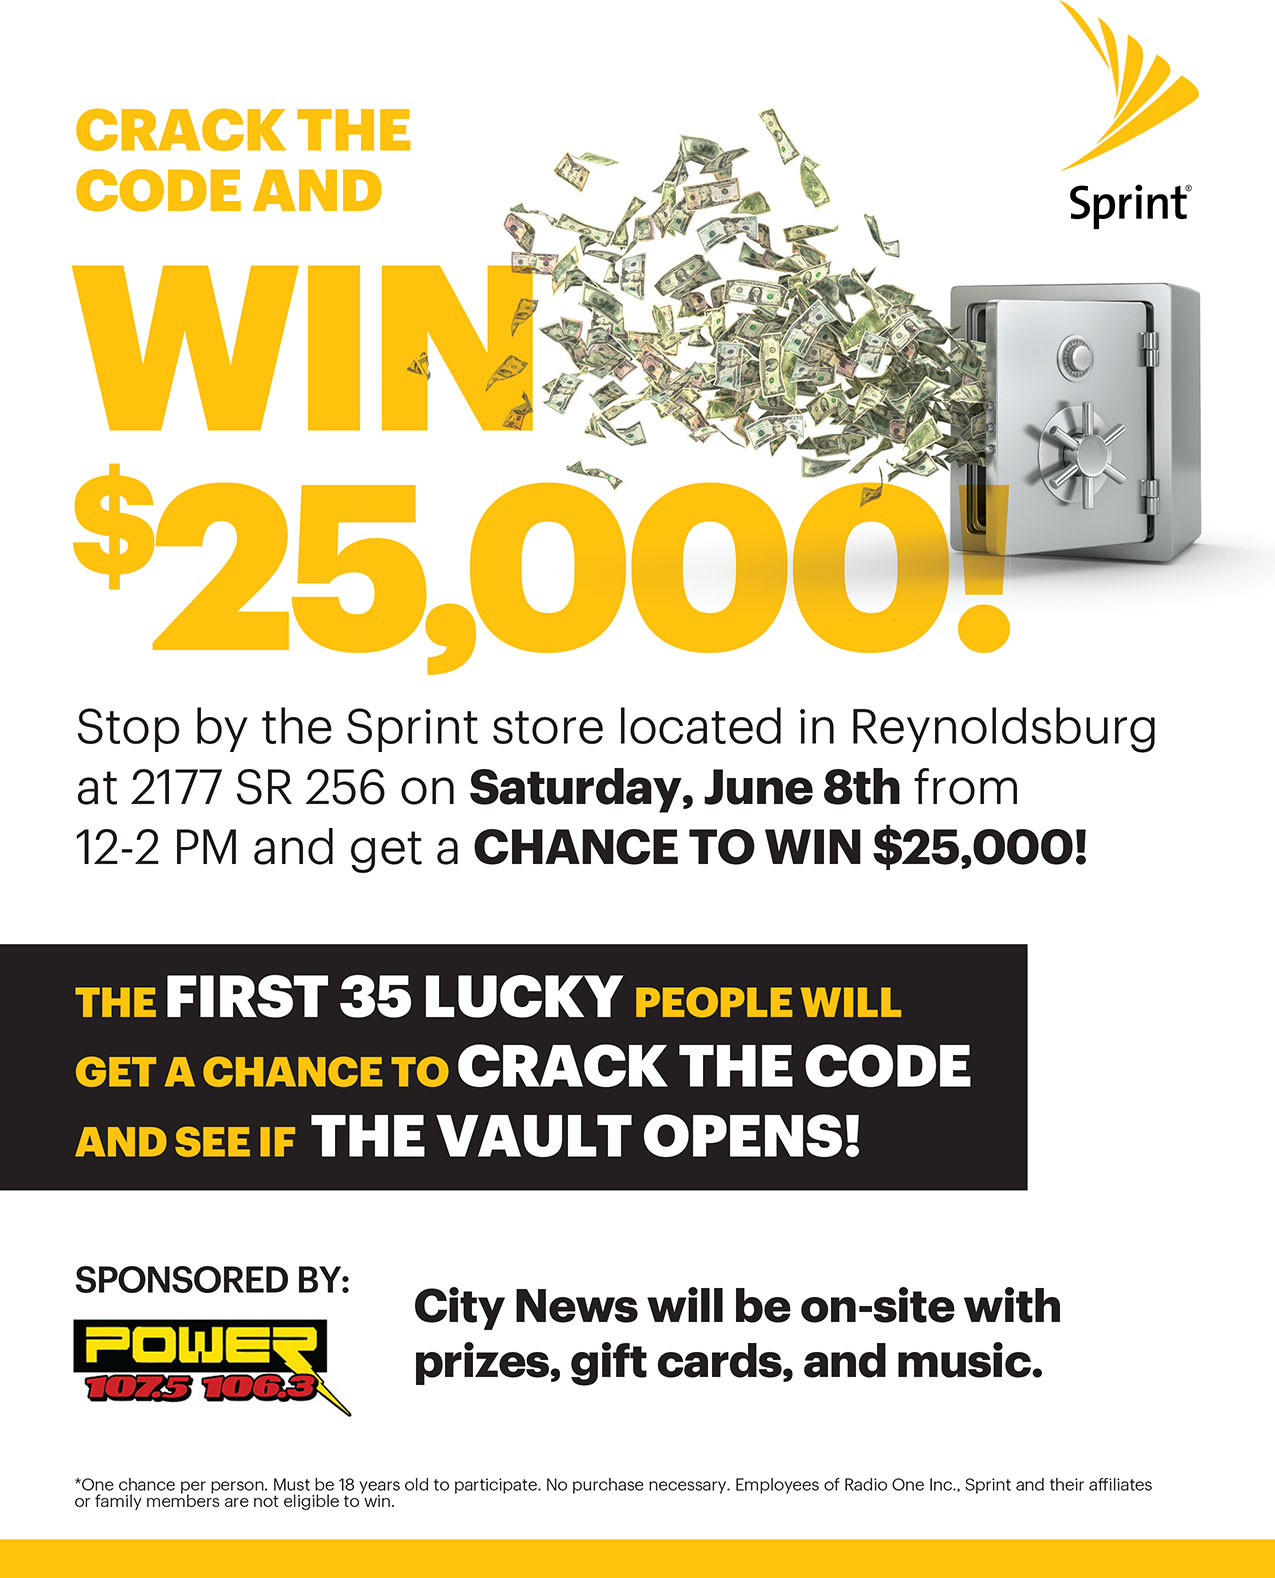 Sprint Crack The Code and Win